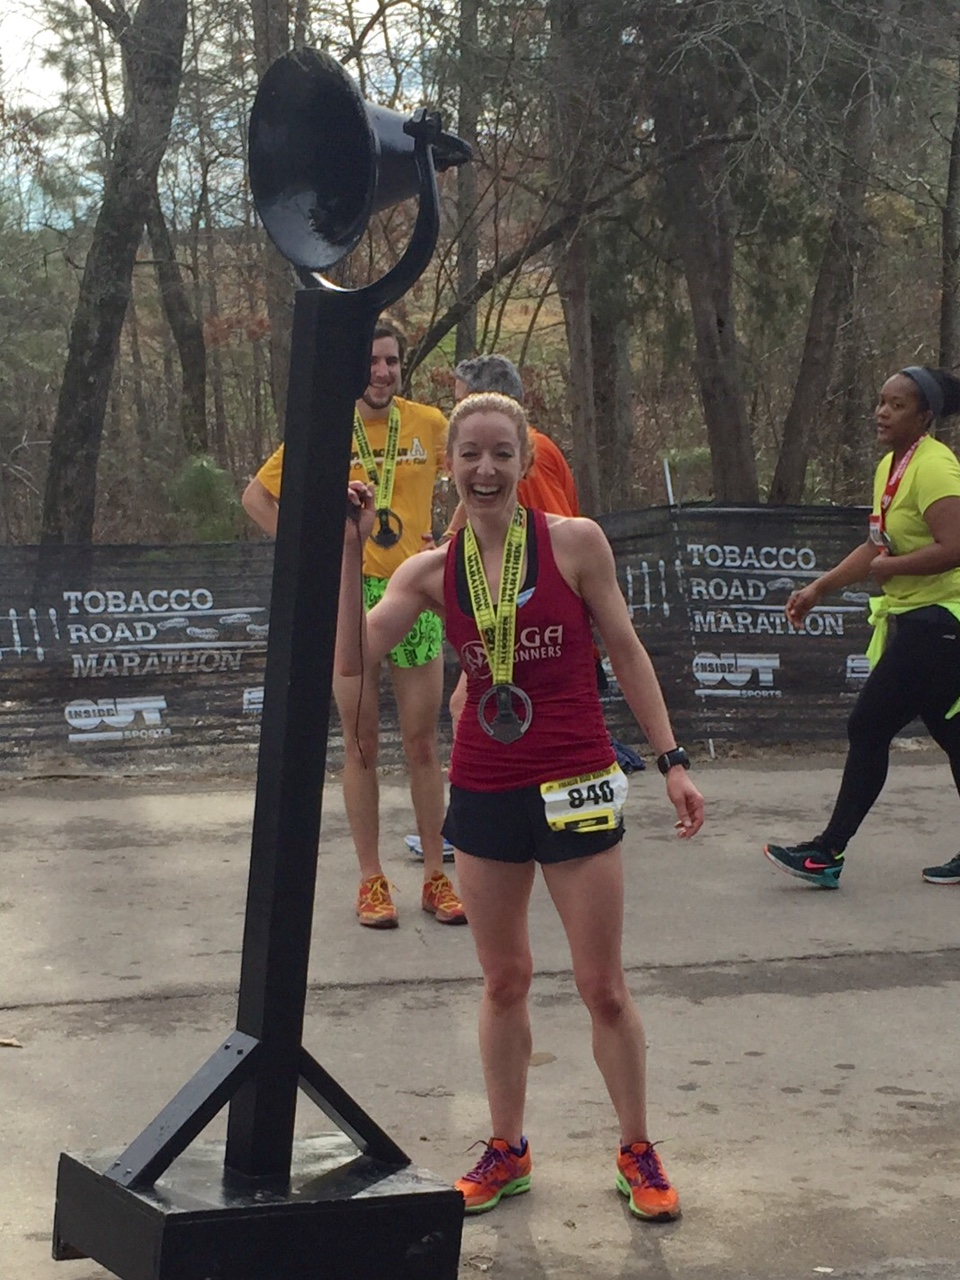 Ringing the PR bell!  (Ignore the fact that my eyes are closed and I look goofy)